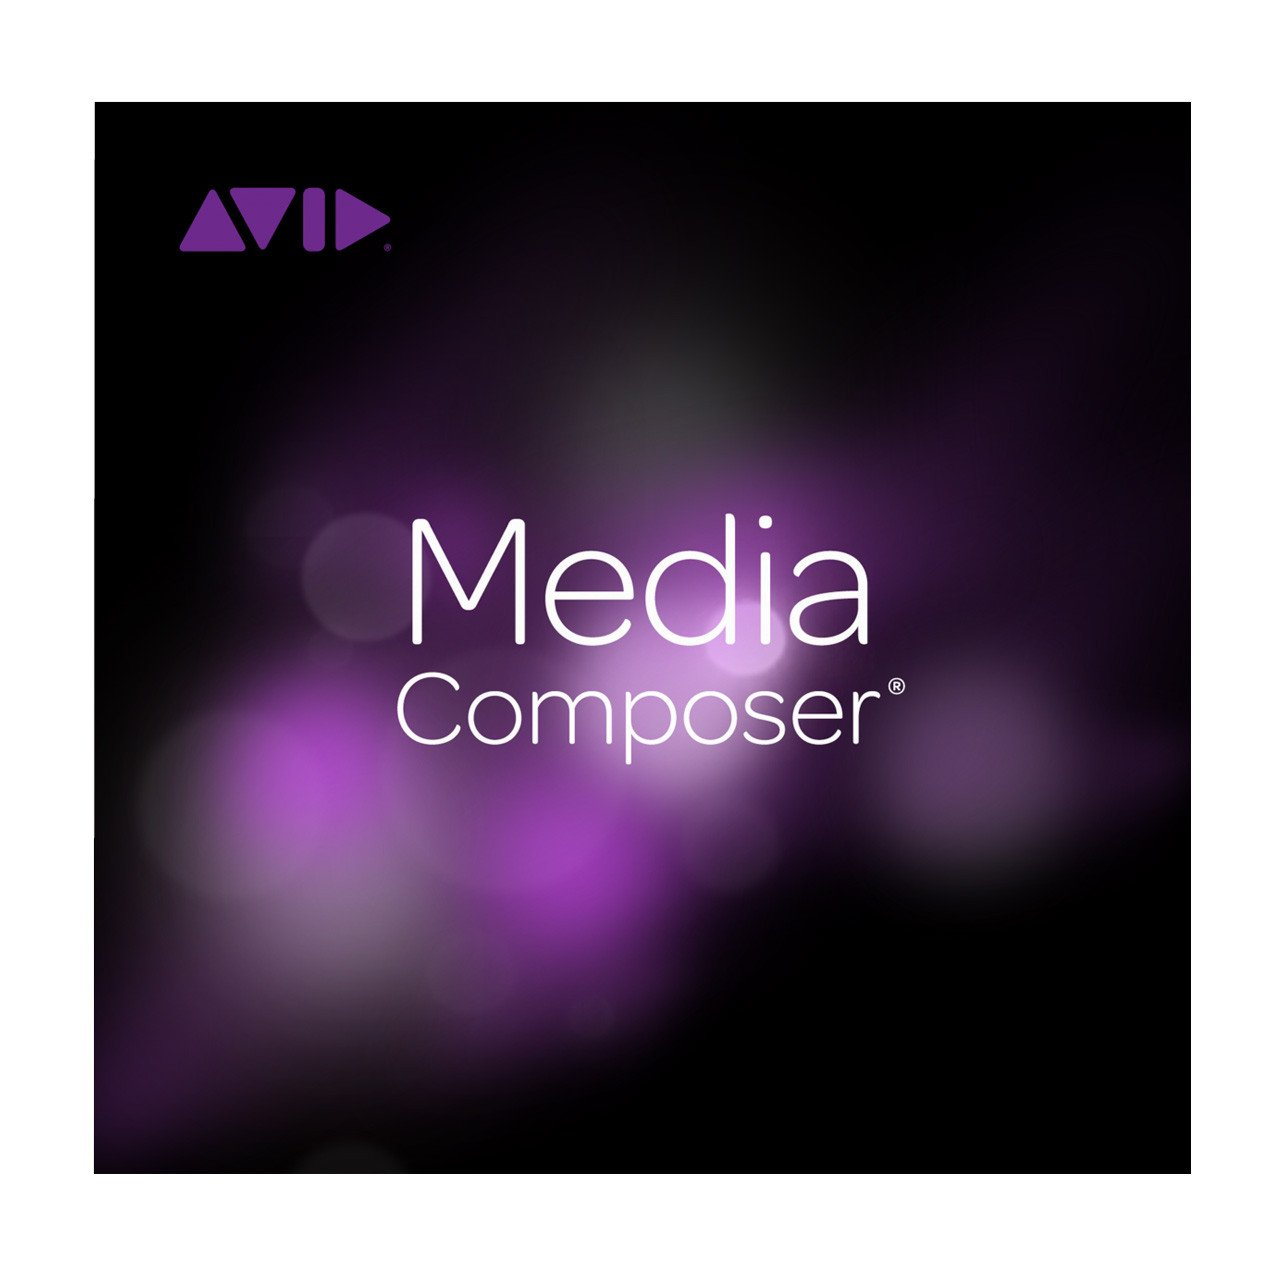 AVID Media Composer Video Editing Software